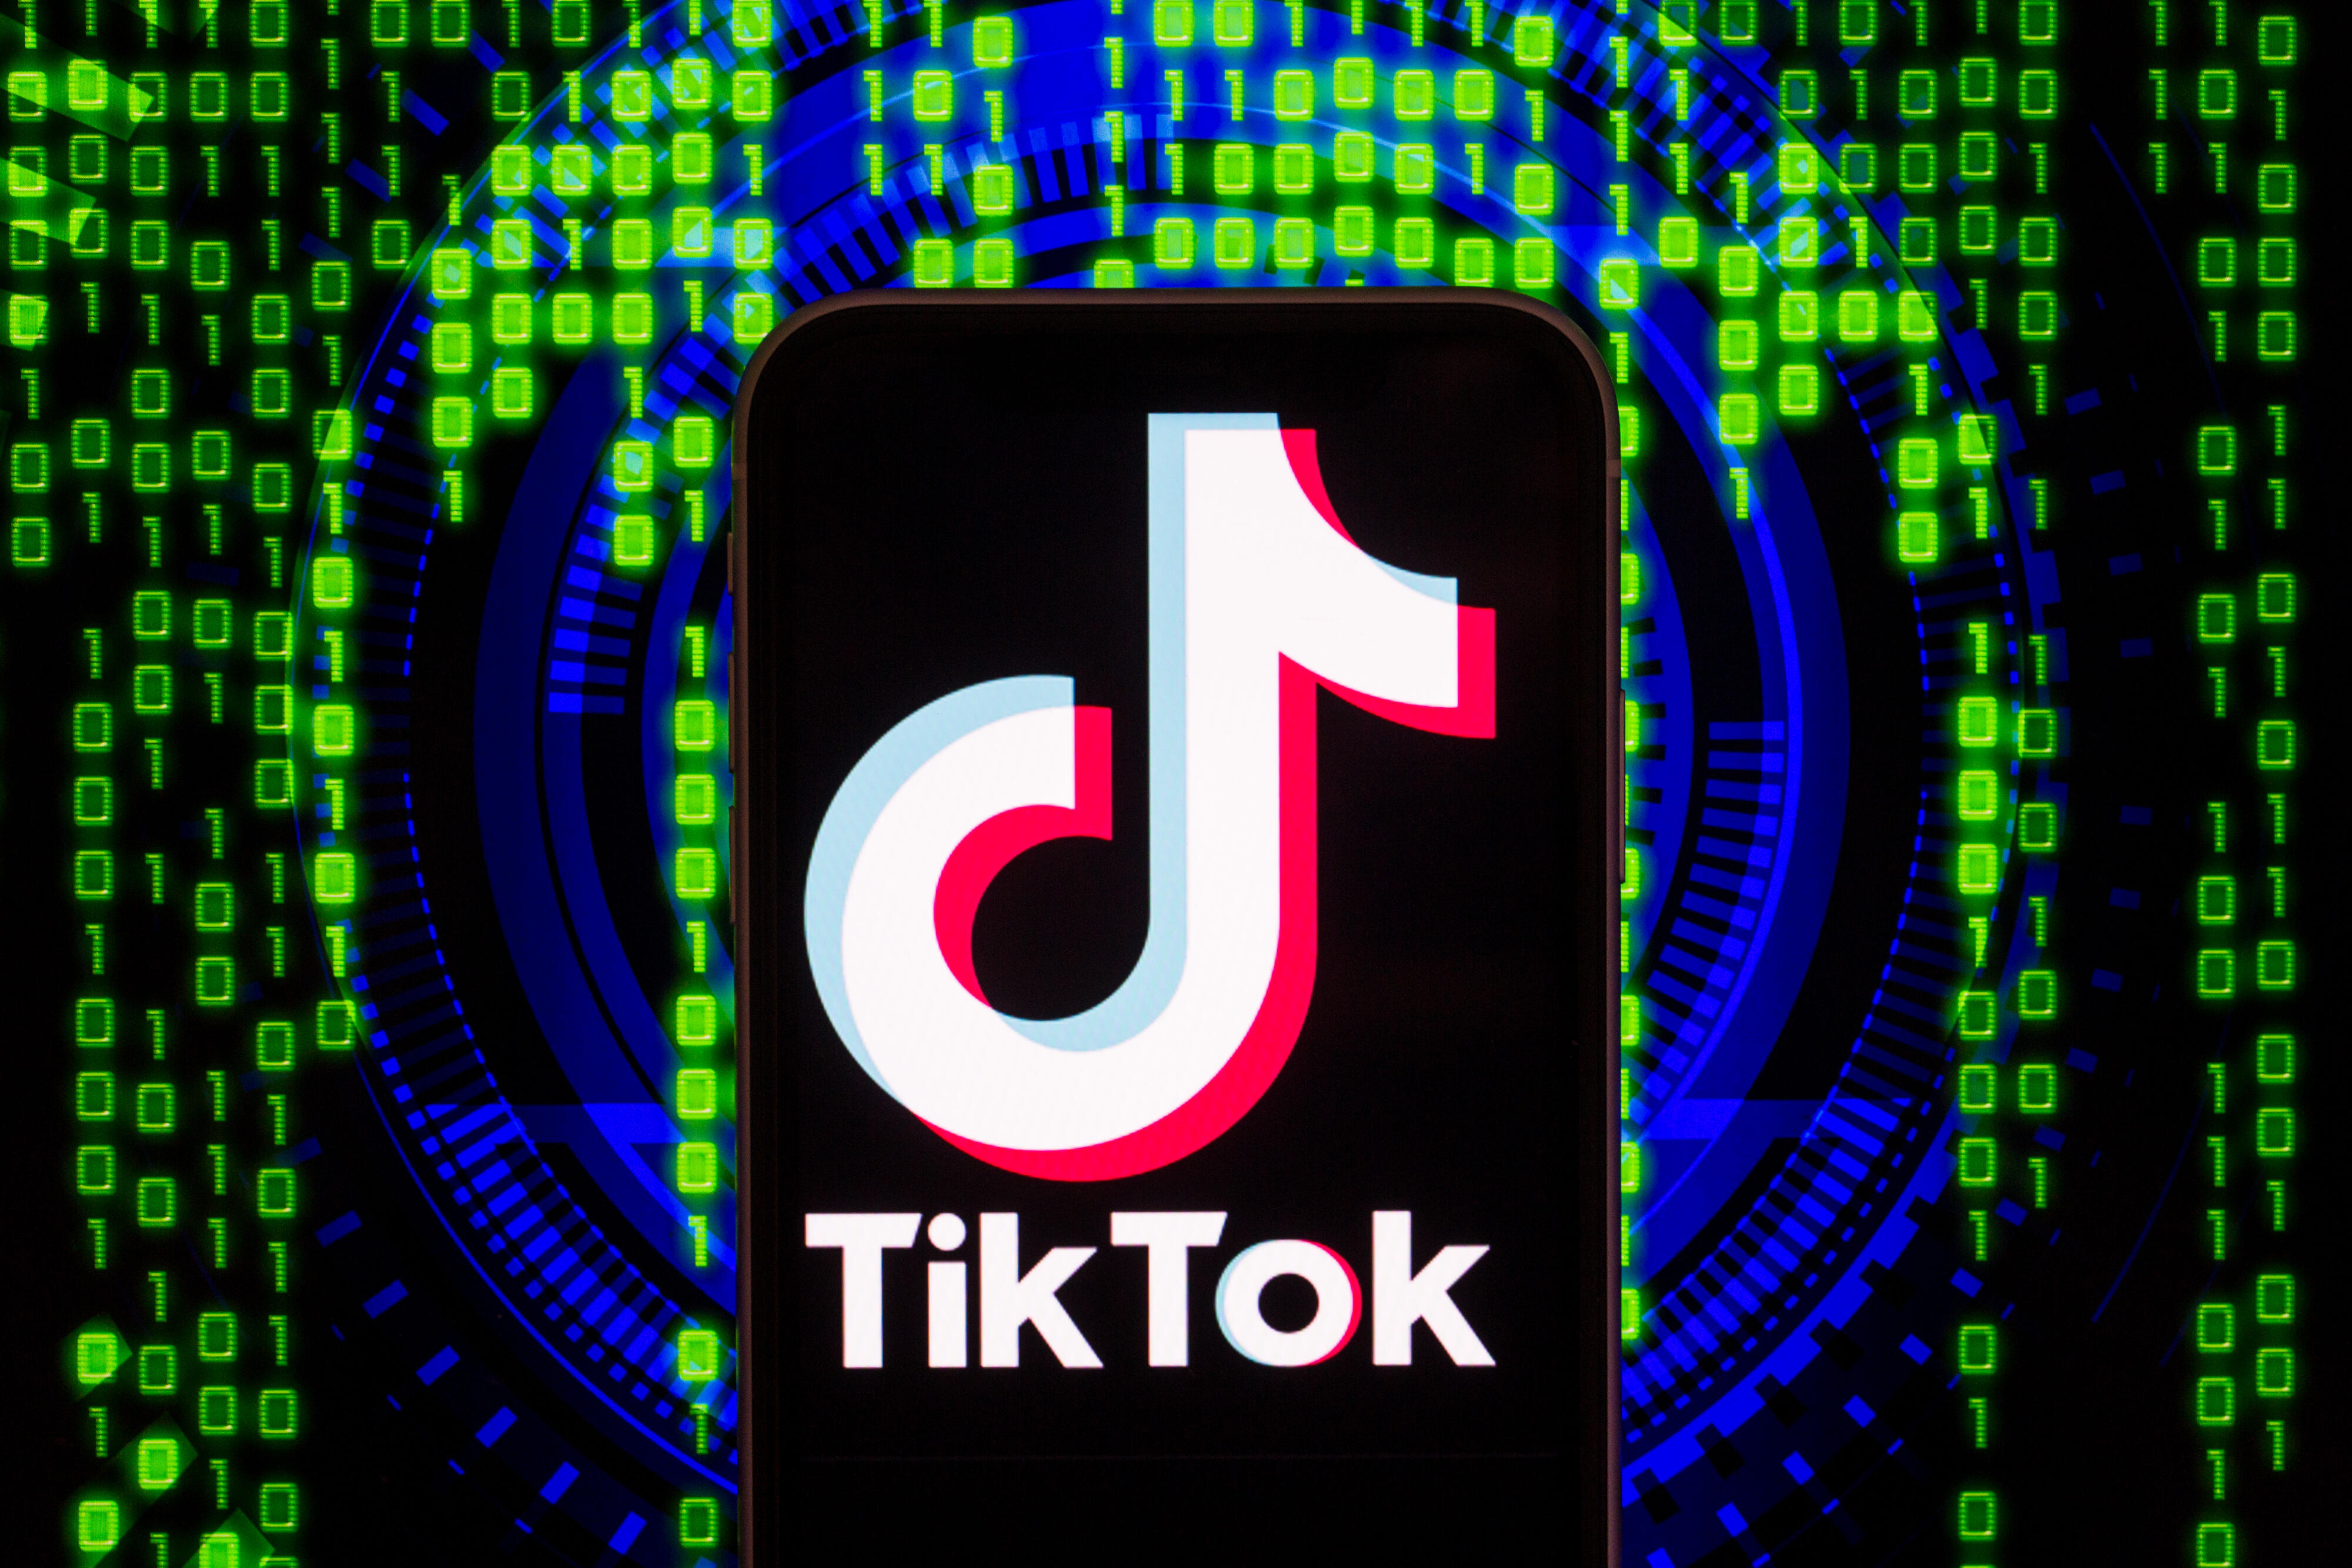 TikTok ads have pushed scams about apps, diet pills, other products, report says